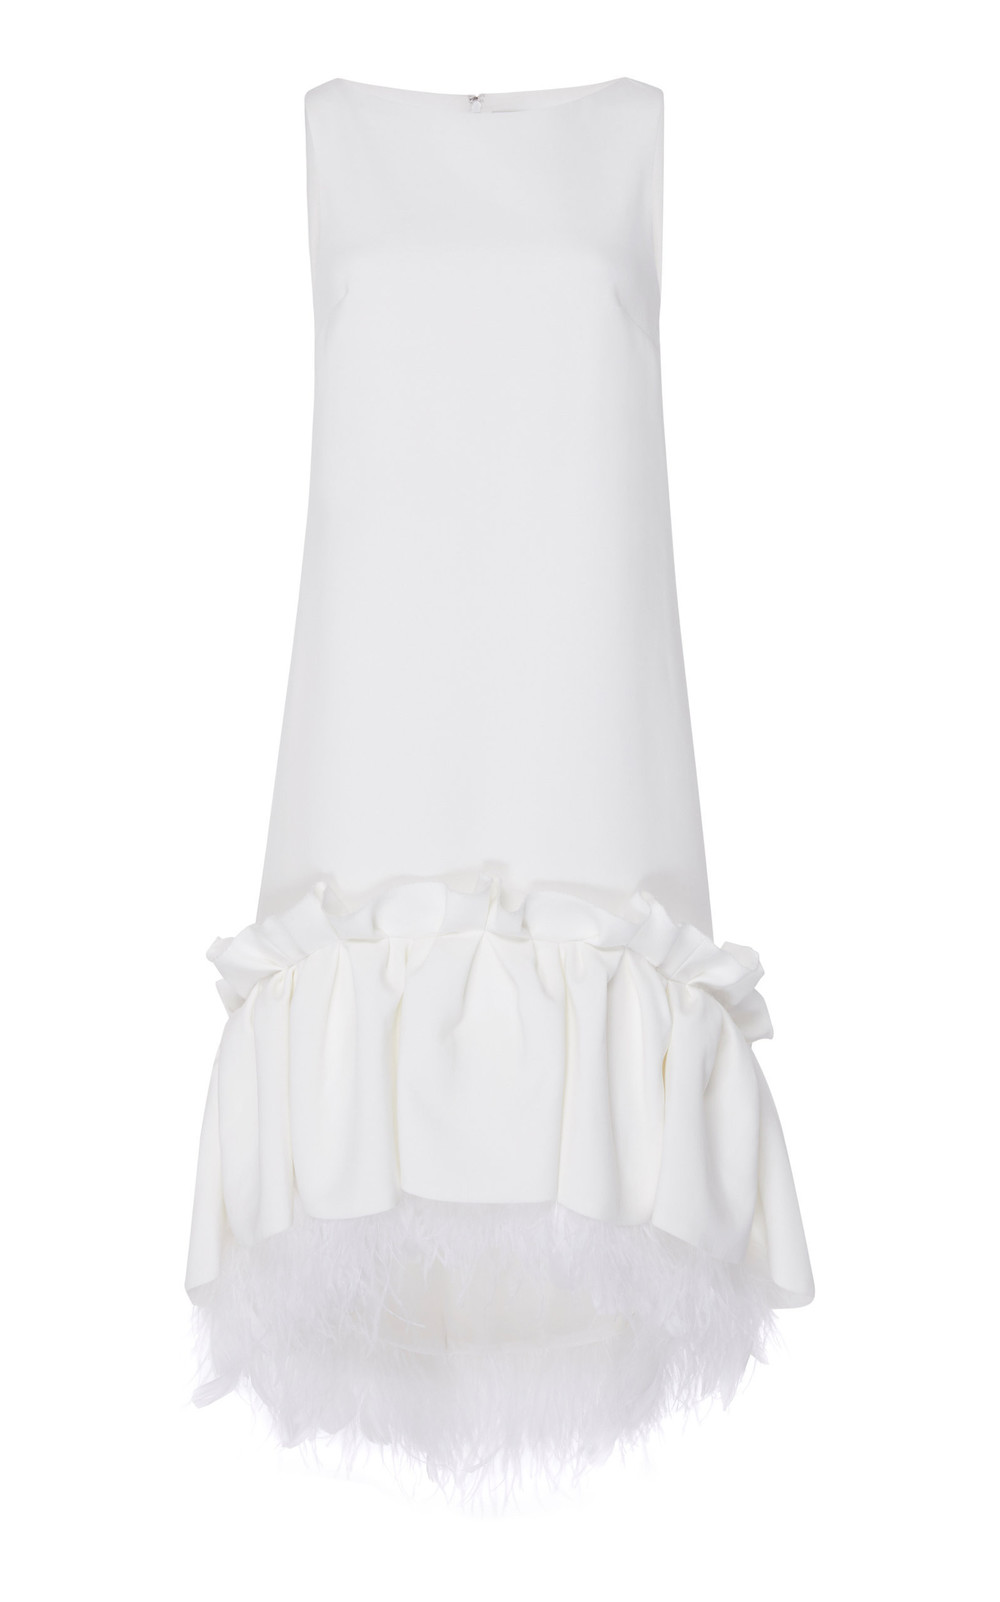 Huishan Zhang Jodie Sleeveless Feather Dress in white